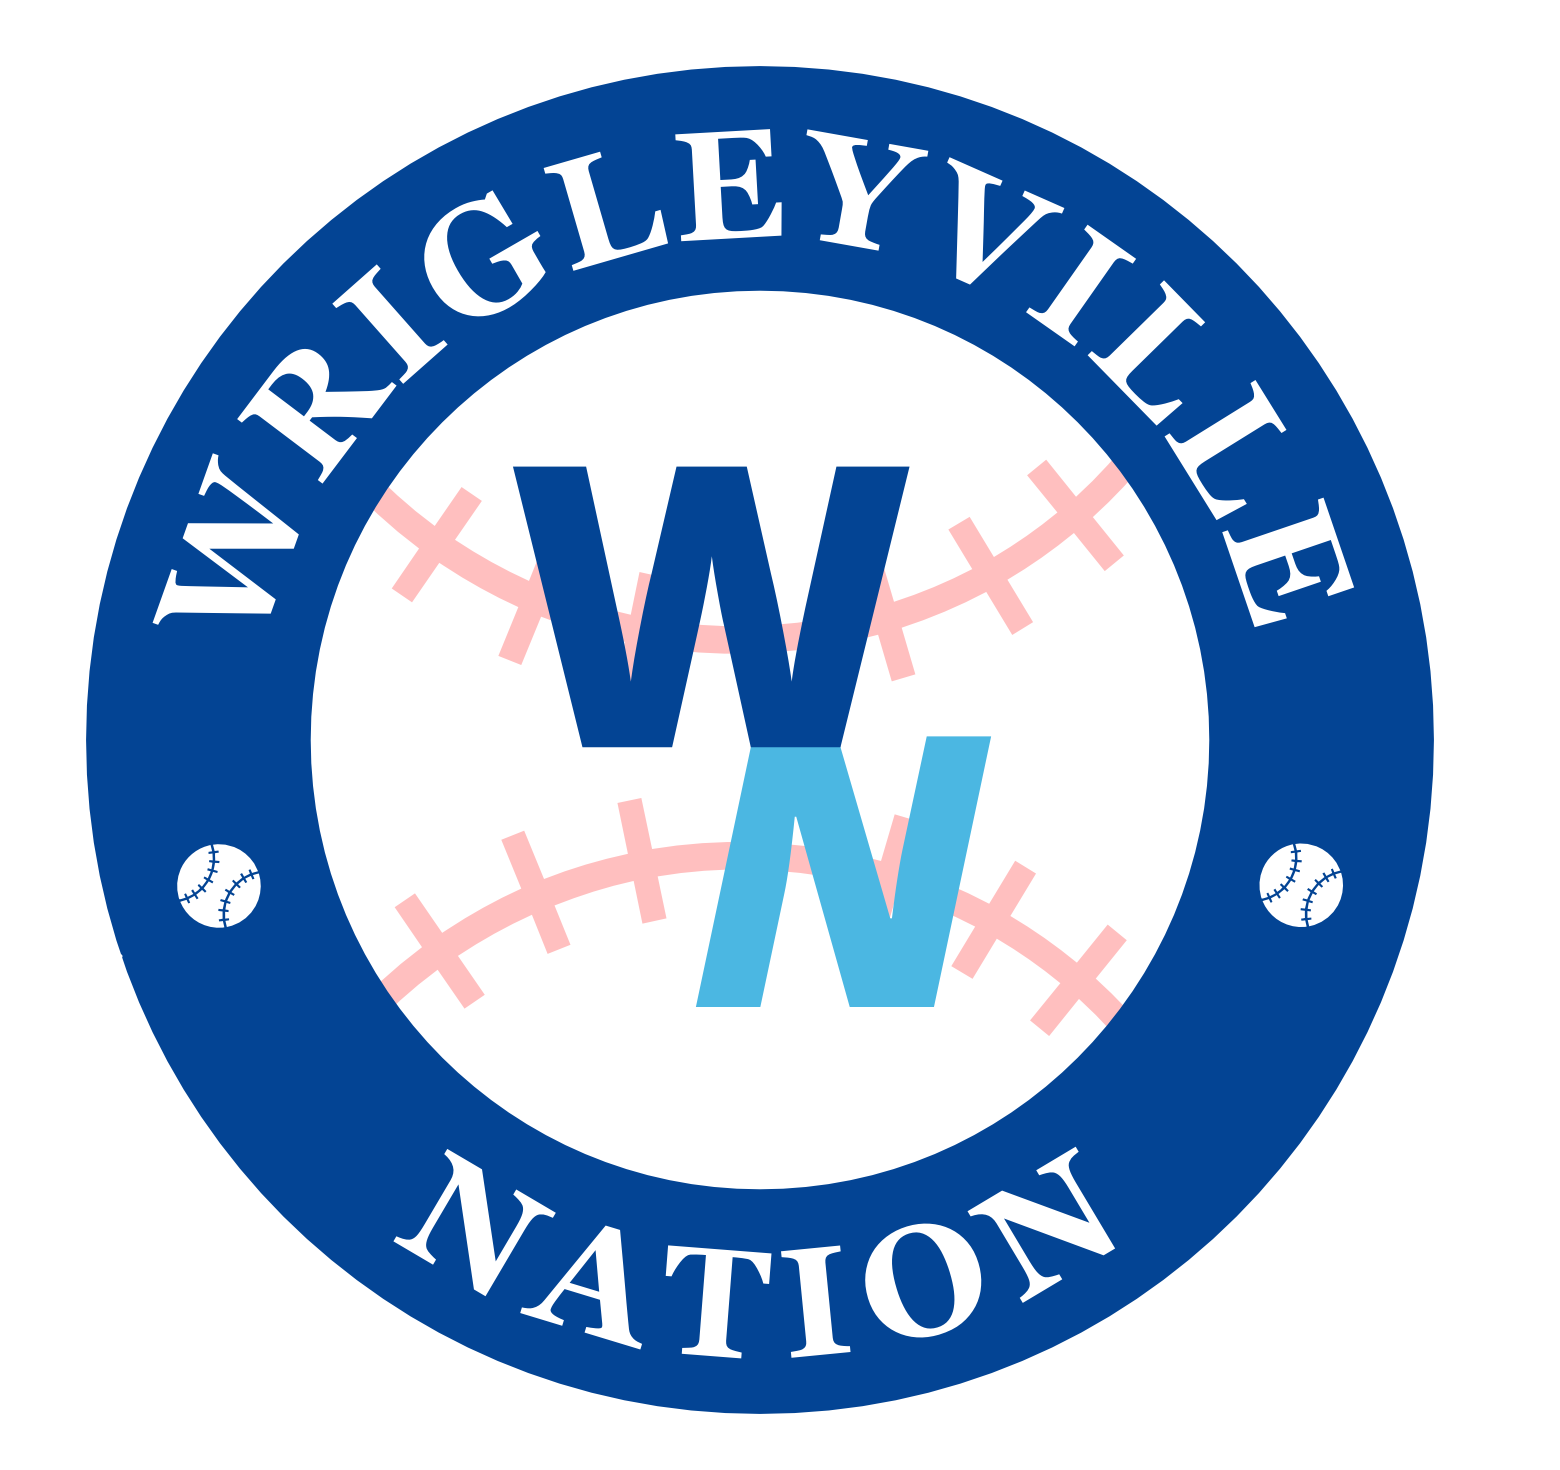 Wrigleyville Nation Ep 226 - Guest: Jared Wyllys, Cubs Opening Weekend, MLB COVID Outbreak, & More show art